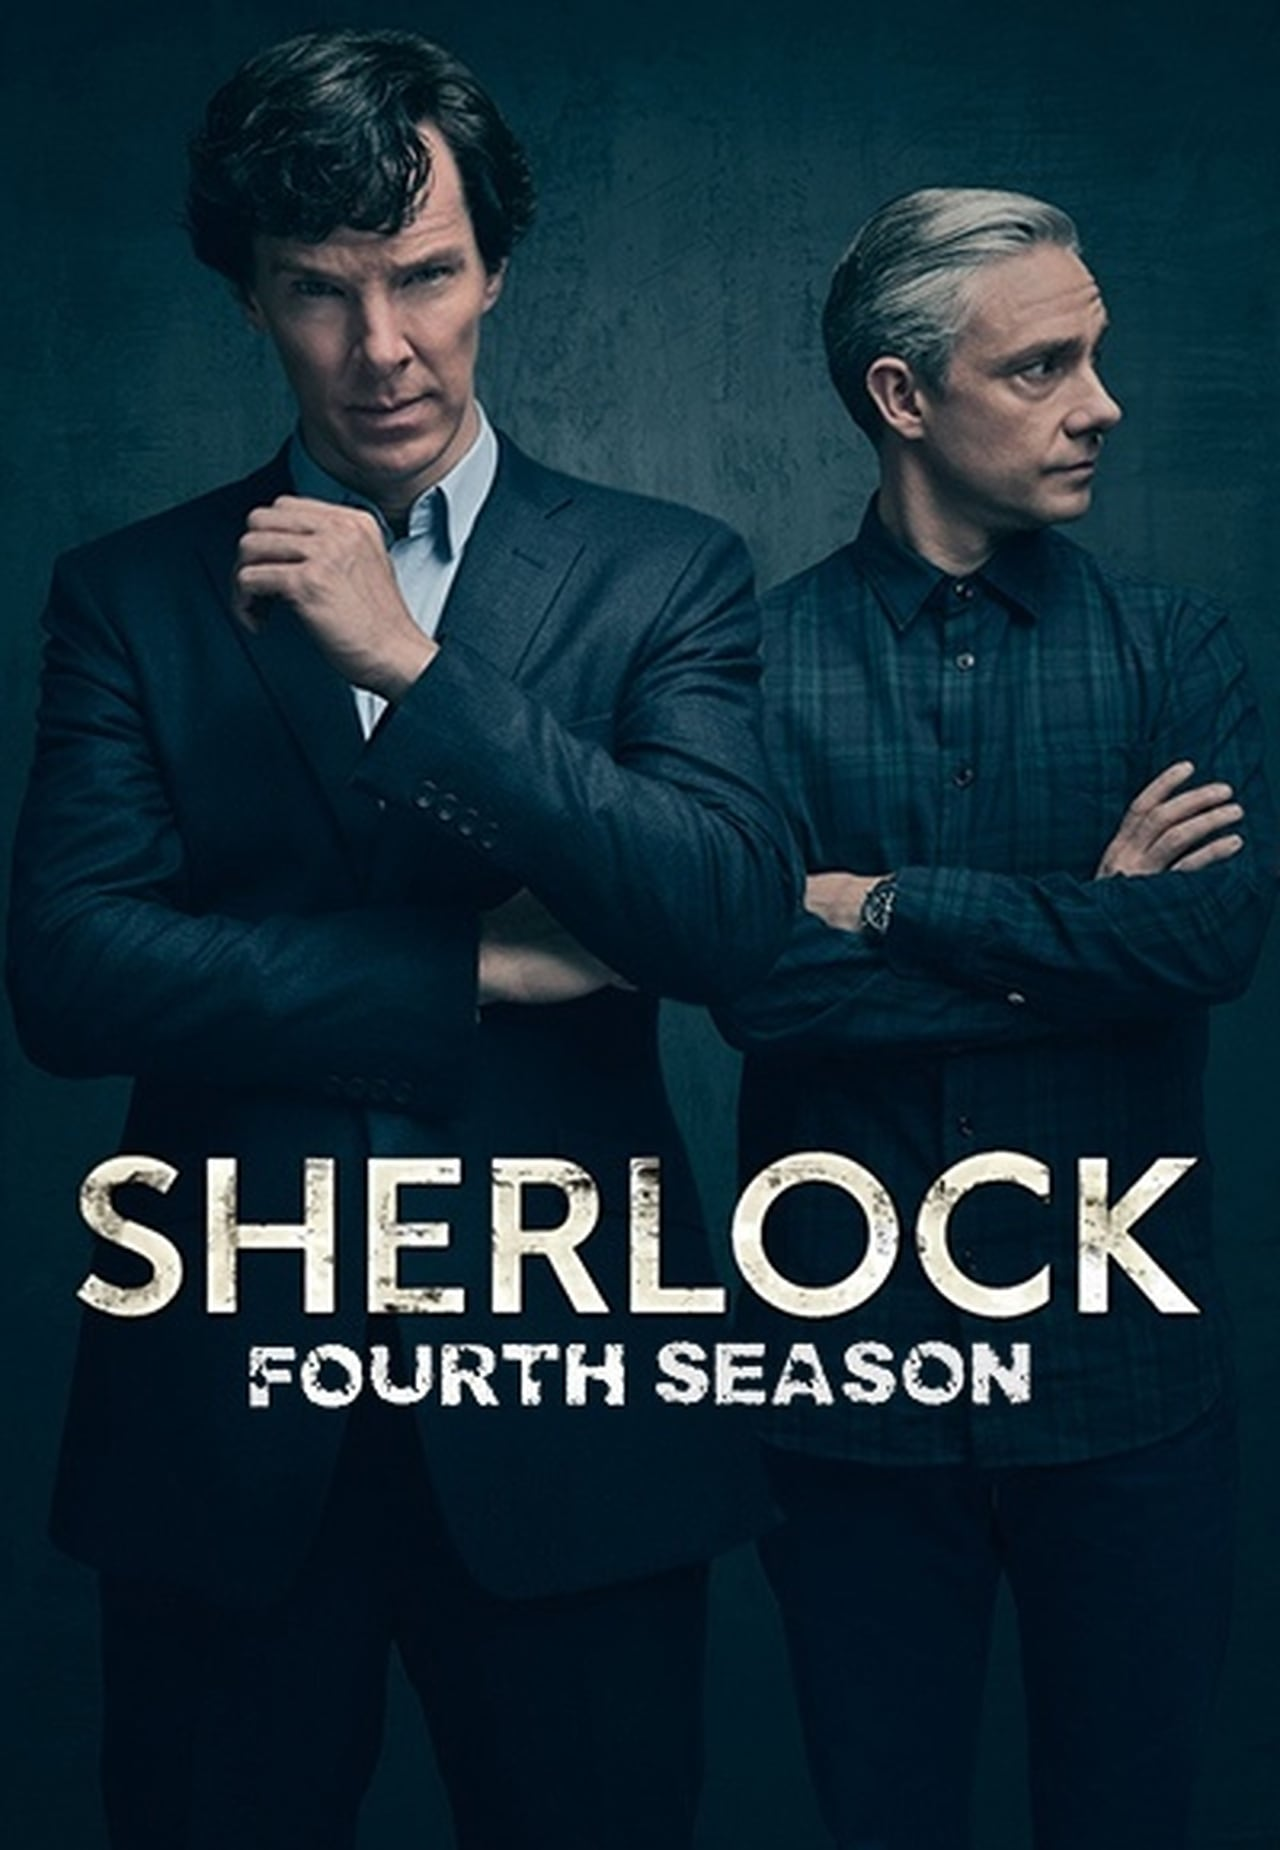 Watch Sherlock Season 4 Online